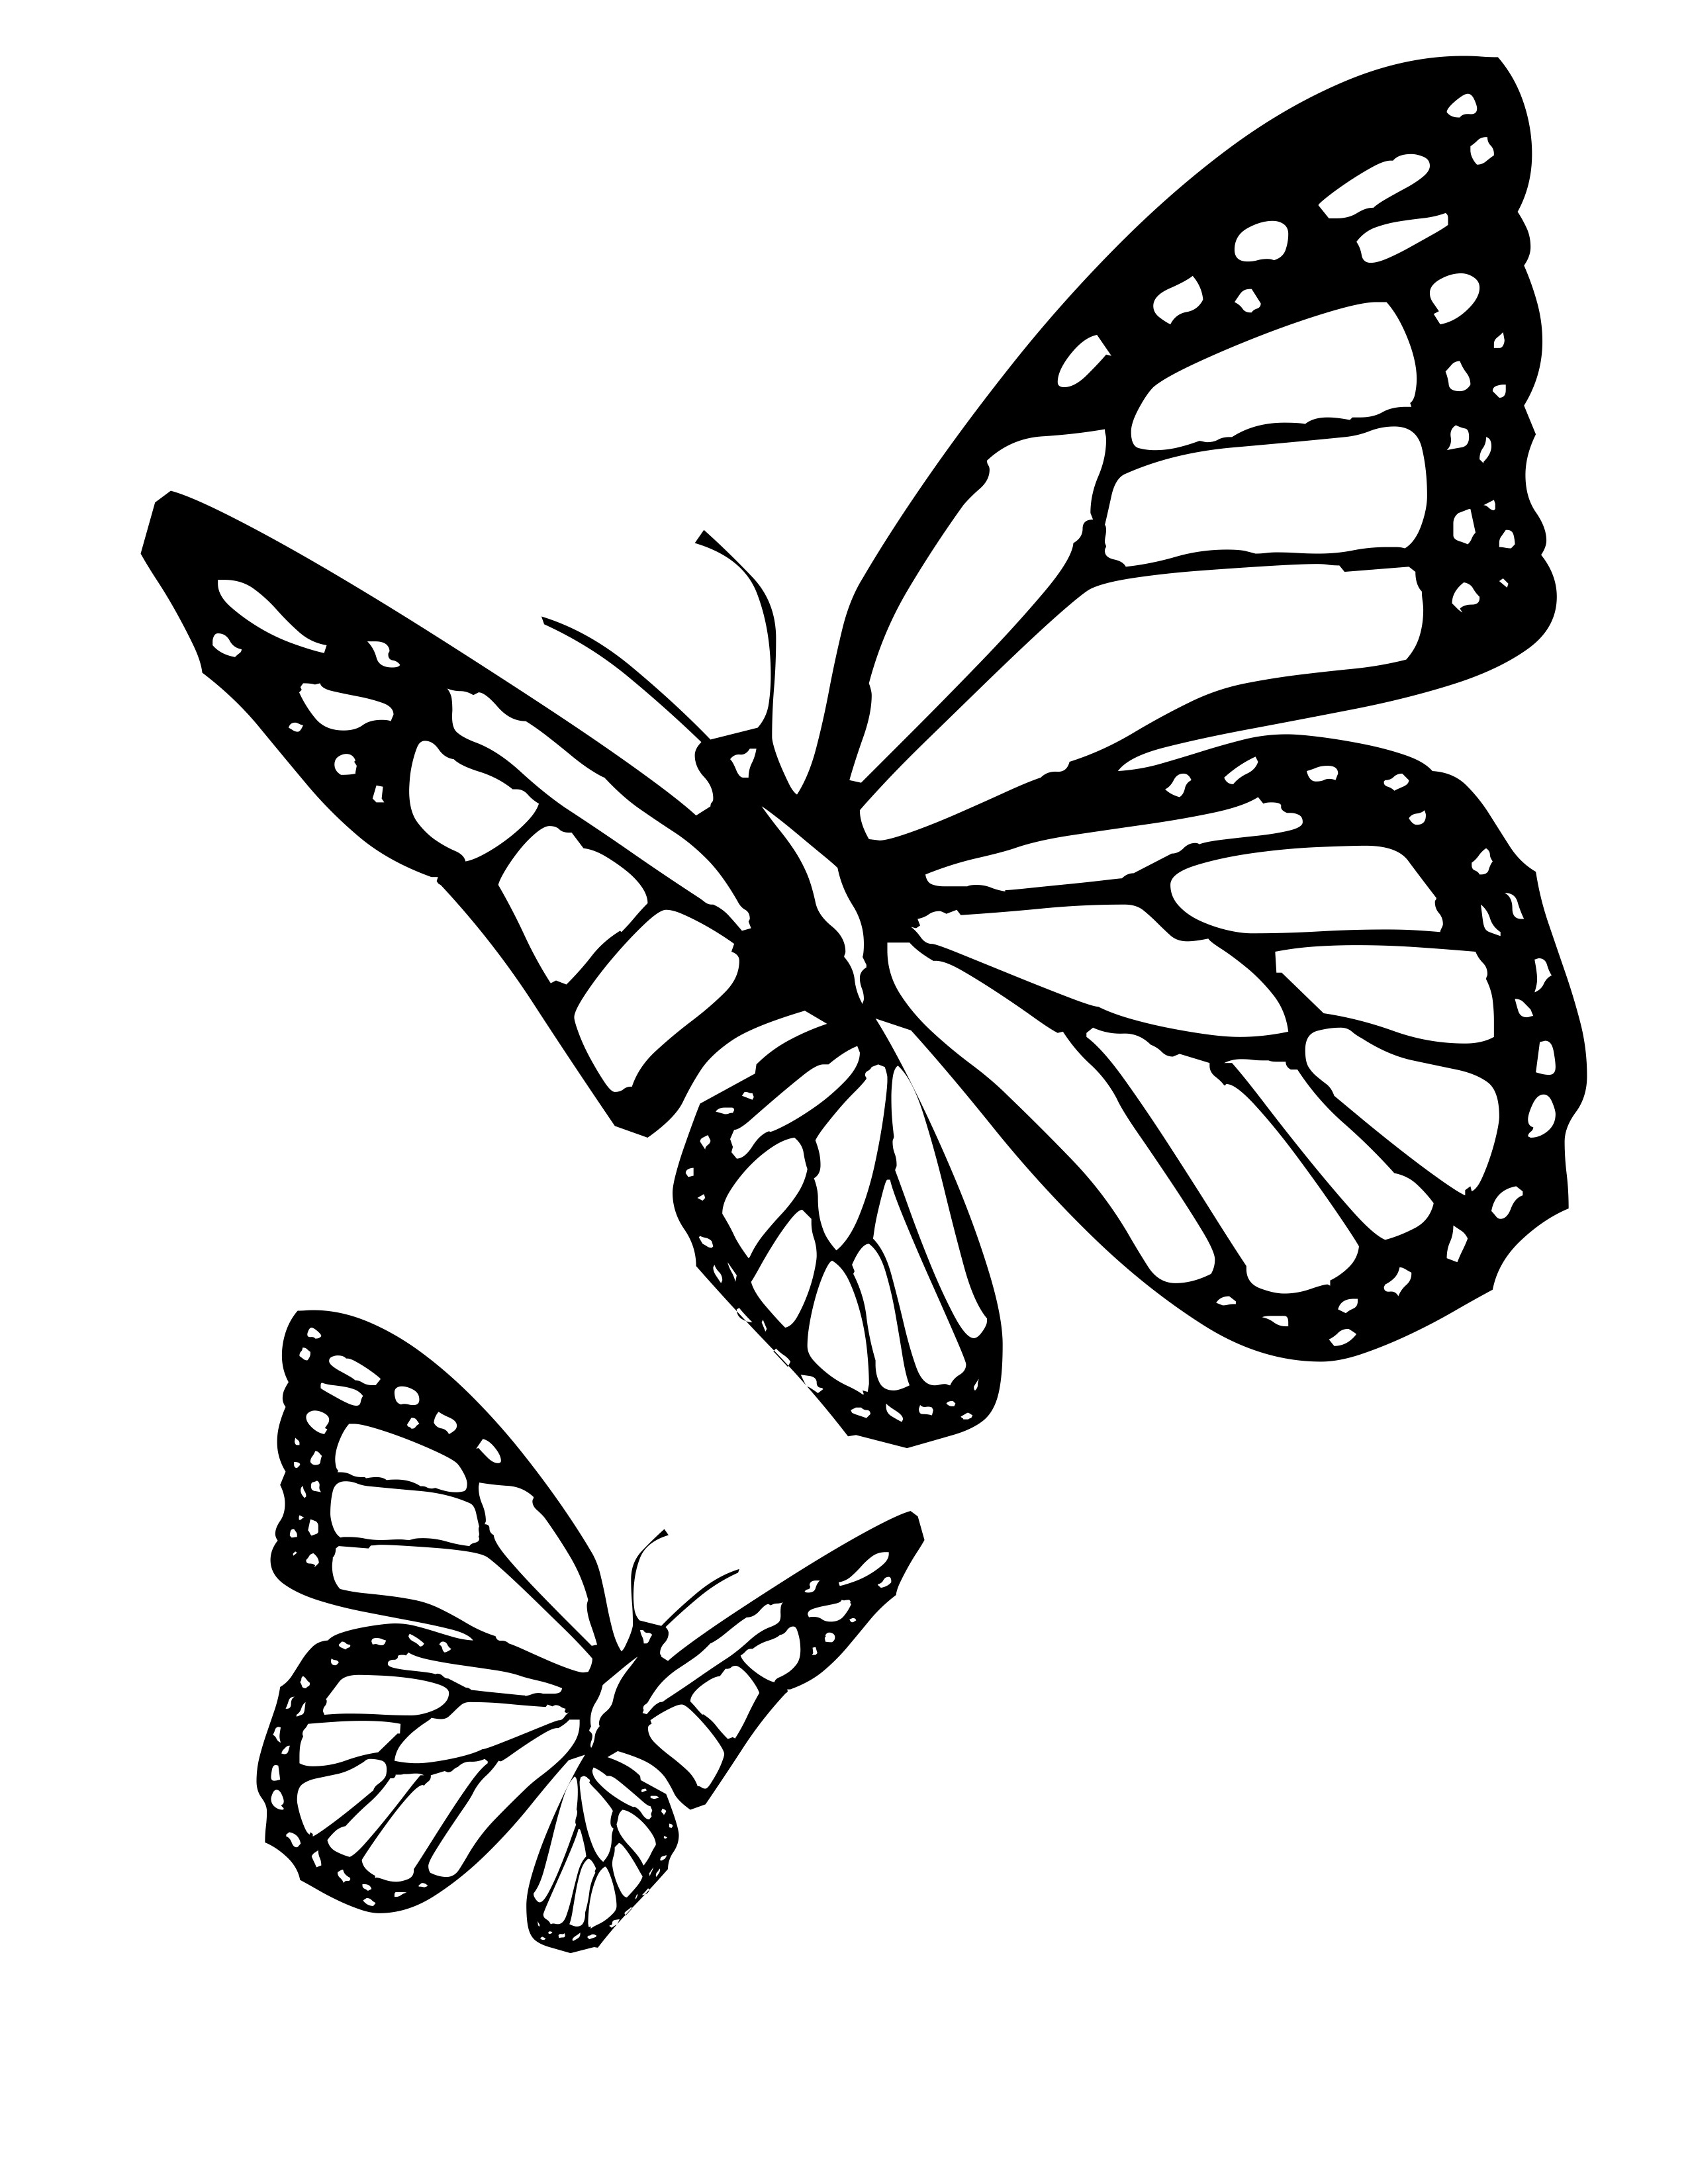 butterfly coloring sheets butterfly coloring pages for kids sheets coloring butterfly